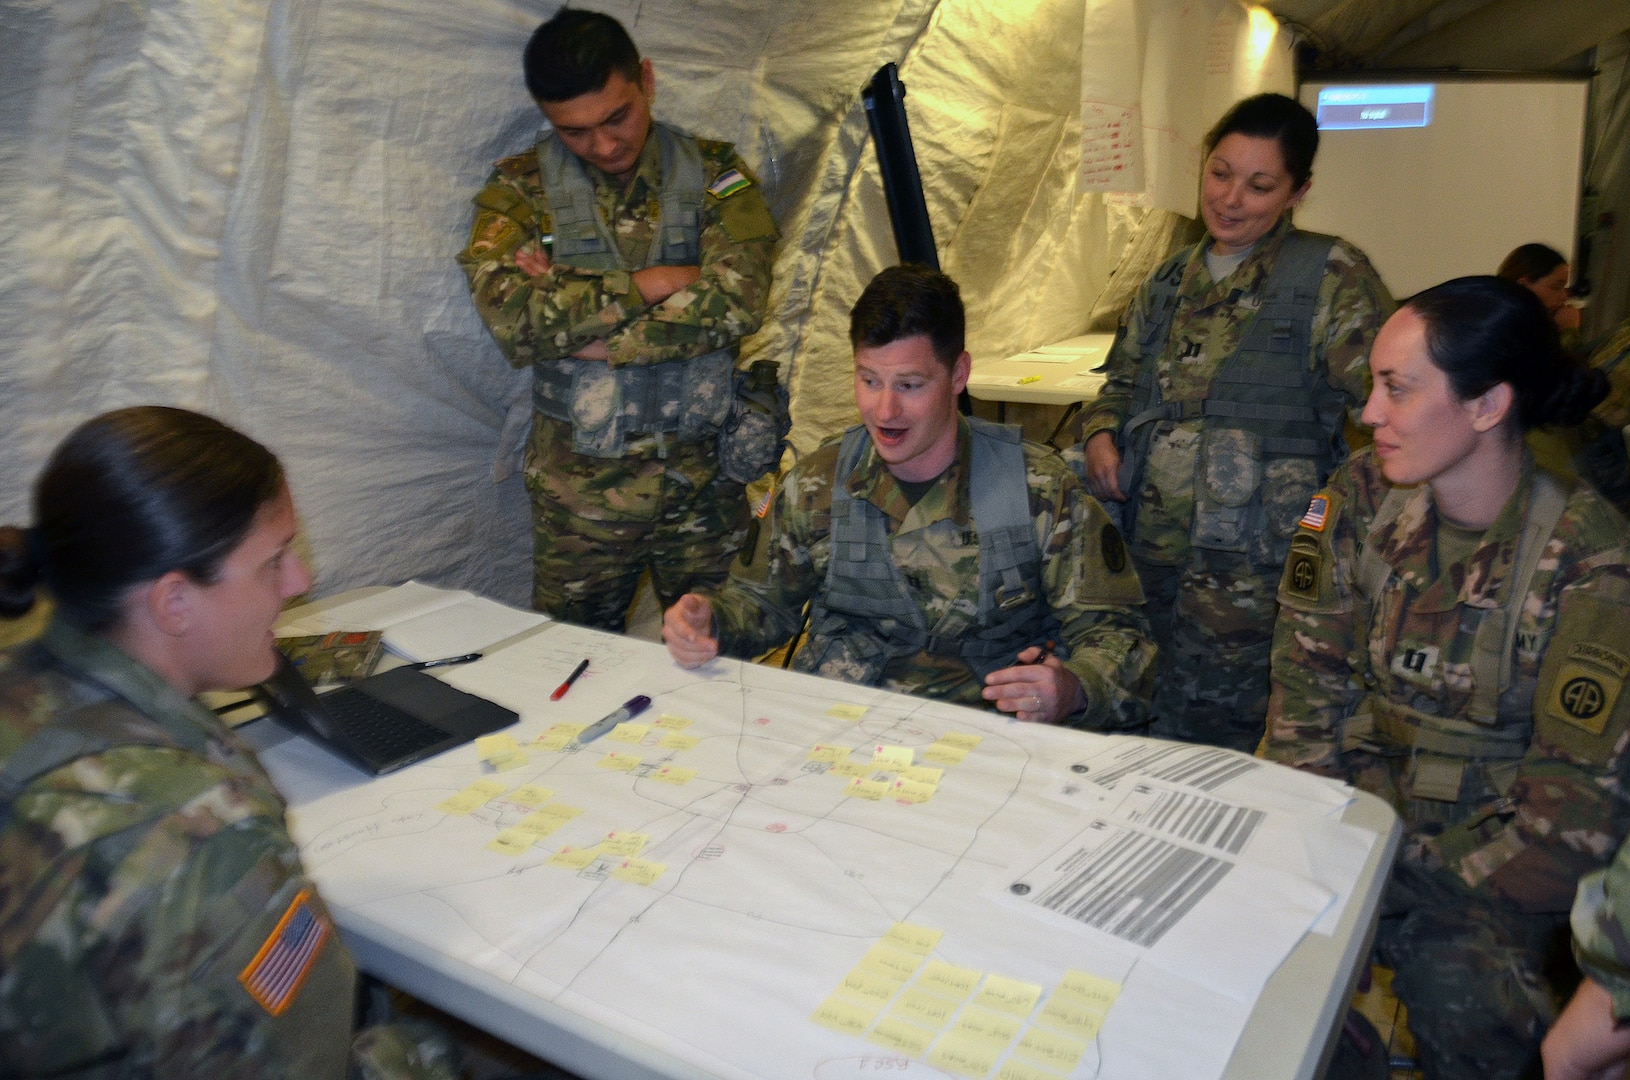 Army Medical Department Center & School, Health Readiness Center of Excellence students participate in a field training exercise for the Captains Career Course at Joint Base San Antonio-Camp Bullis May 7. Sitting clockwise at the table are Capts. Mike Bird, Maureen Mulholland and Kirby Leininger, who are looking at a map of Houston in a scenario in which a hurricane has made landfall on the city. During the exercise, the students put together a support operations plan for a medical battalion that is supporting civil authorities responding to the hurricane. Students in the Captains Career Course undergo nine weeks of training that includes classroom and hands-on training about the Military Decision Making Process, Army Health Systems Support and Force Health Protection doctrine, unit training management, leadership skills and staff officer functions.